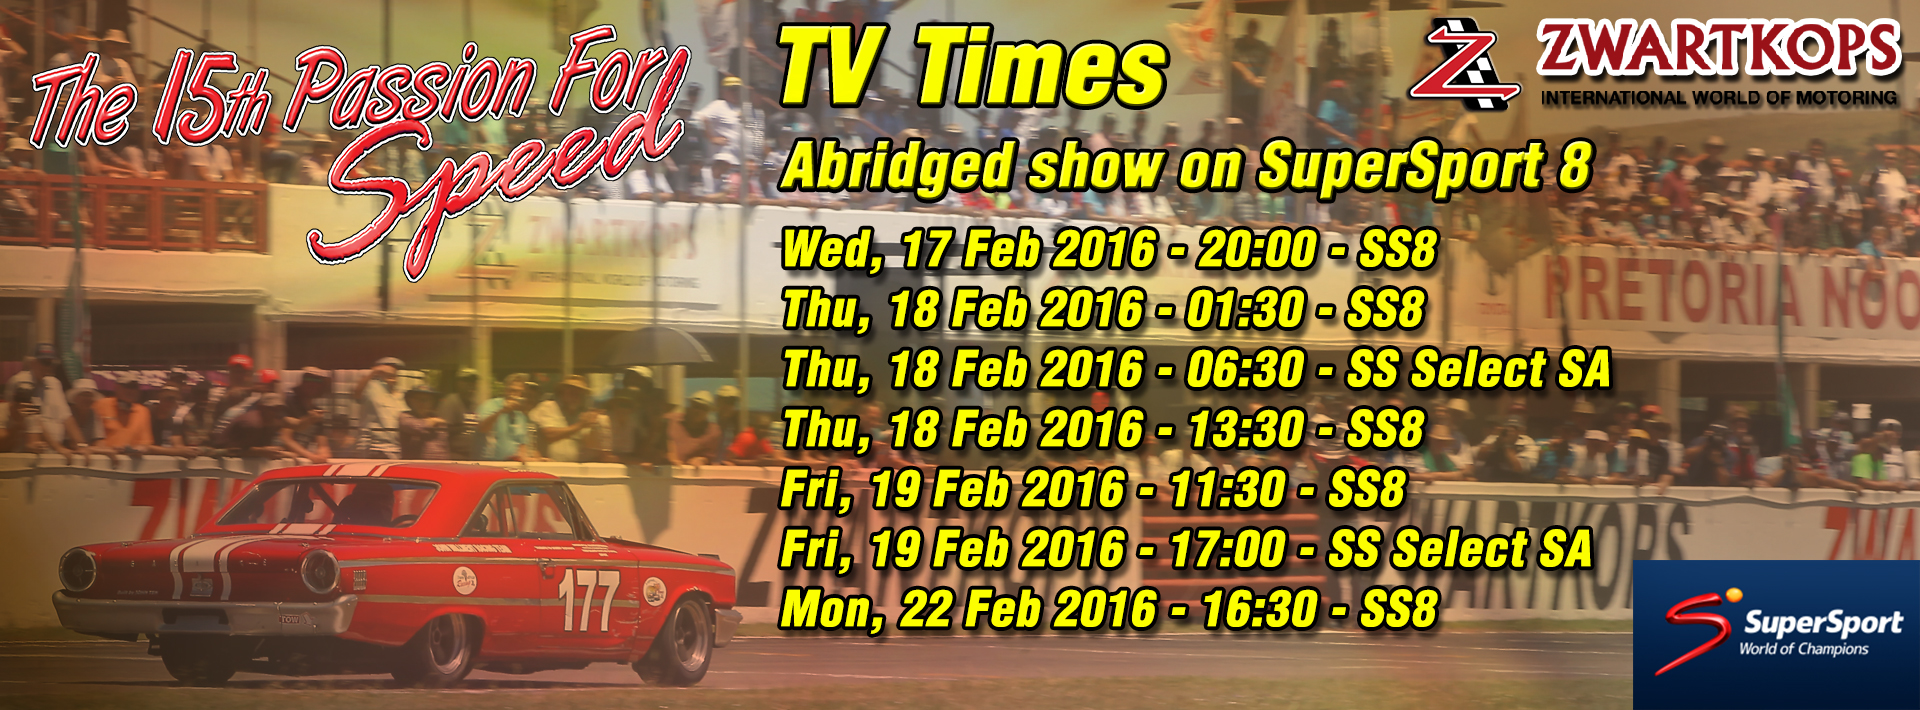 The 15th Passion for Speed - TV Times on SuperSport 8